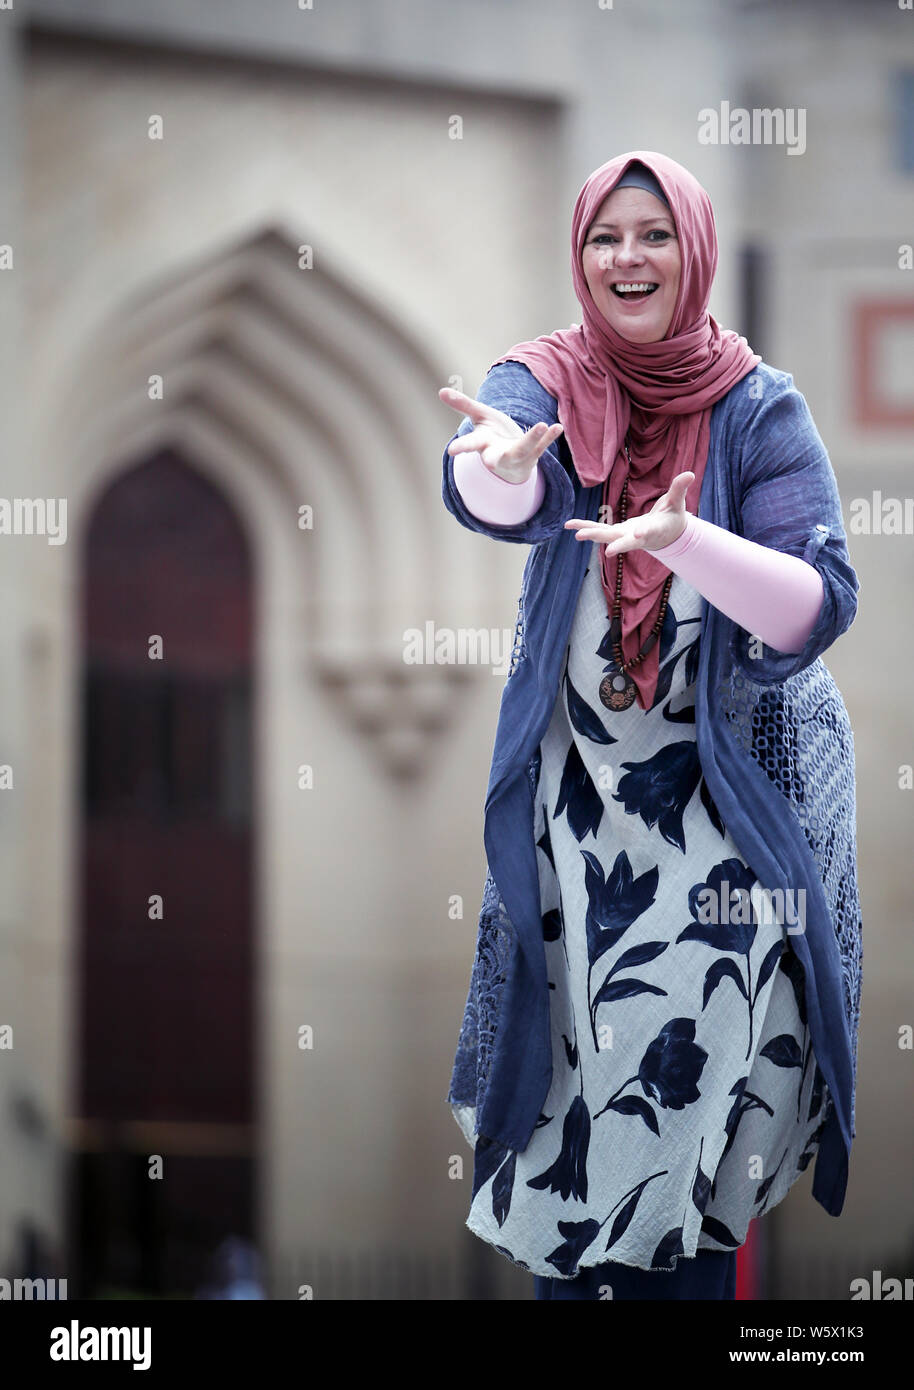 Journalist and human rights activist Lauren Booth outside Edinburgh Central Mosque ahead of her Edinburgh Fringe one woman show 'Accidentally Muslim' which will be performed at the Gilded Balloon throughout the Edinburgh Festival. Stock Photo